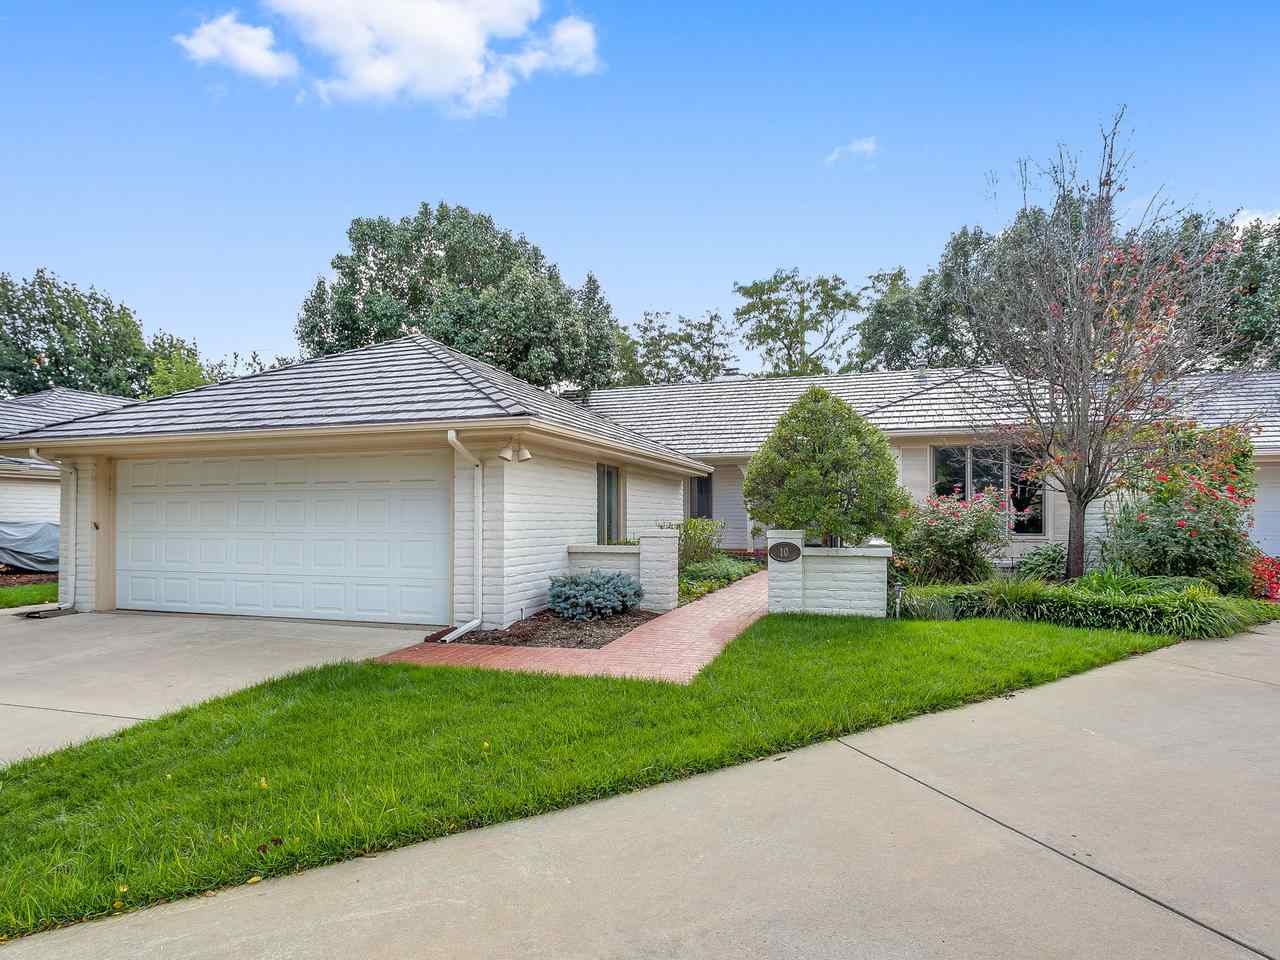 "$15K PRICE REDUCTION....SELLER WANTS SOLD!  Welcome home to the fabulous area of The Greens.  This patio home has all new paint and carpet through out!  Lovely grey tone with white trim as well as the happiest shade of green in the kitchen and bedrooms.  Very nice floor plan excellent for entertaining.  13x10 nook off the living room with built in bookcase is the perfect area for a study (marked as office on dimensions) or TV den.  Main floor master has walk in closet with built in drawers.  Make up vanity between bedroom and closet near the master bath. Main floor powder room for your guests. Basement has 2nd bedroom with attached full bath.  Large family room and two storage areas.  Lovely 29x10 covered brick patio in back and gorgeous landscaping. 3 year old Class 4 tile roof (could be a savings on insurance). Additional common parking for guests.  HOA dues cover lawn care, sprinkler maintenance & water use, snow removal for 2"" or greater, trash service, security, mail boxes, trimming of front bushes & maintenance of the commons areas. Annual fee of $1213 and then $310 per month.  Don't delay, these units don't come up for sale very often."